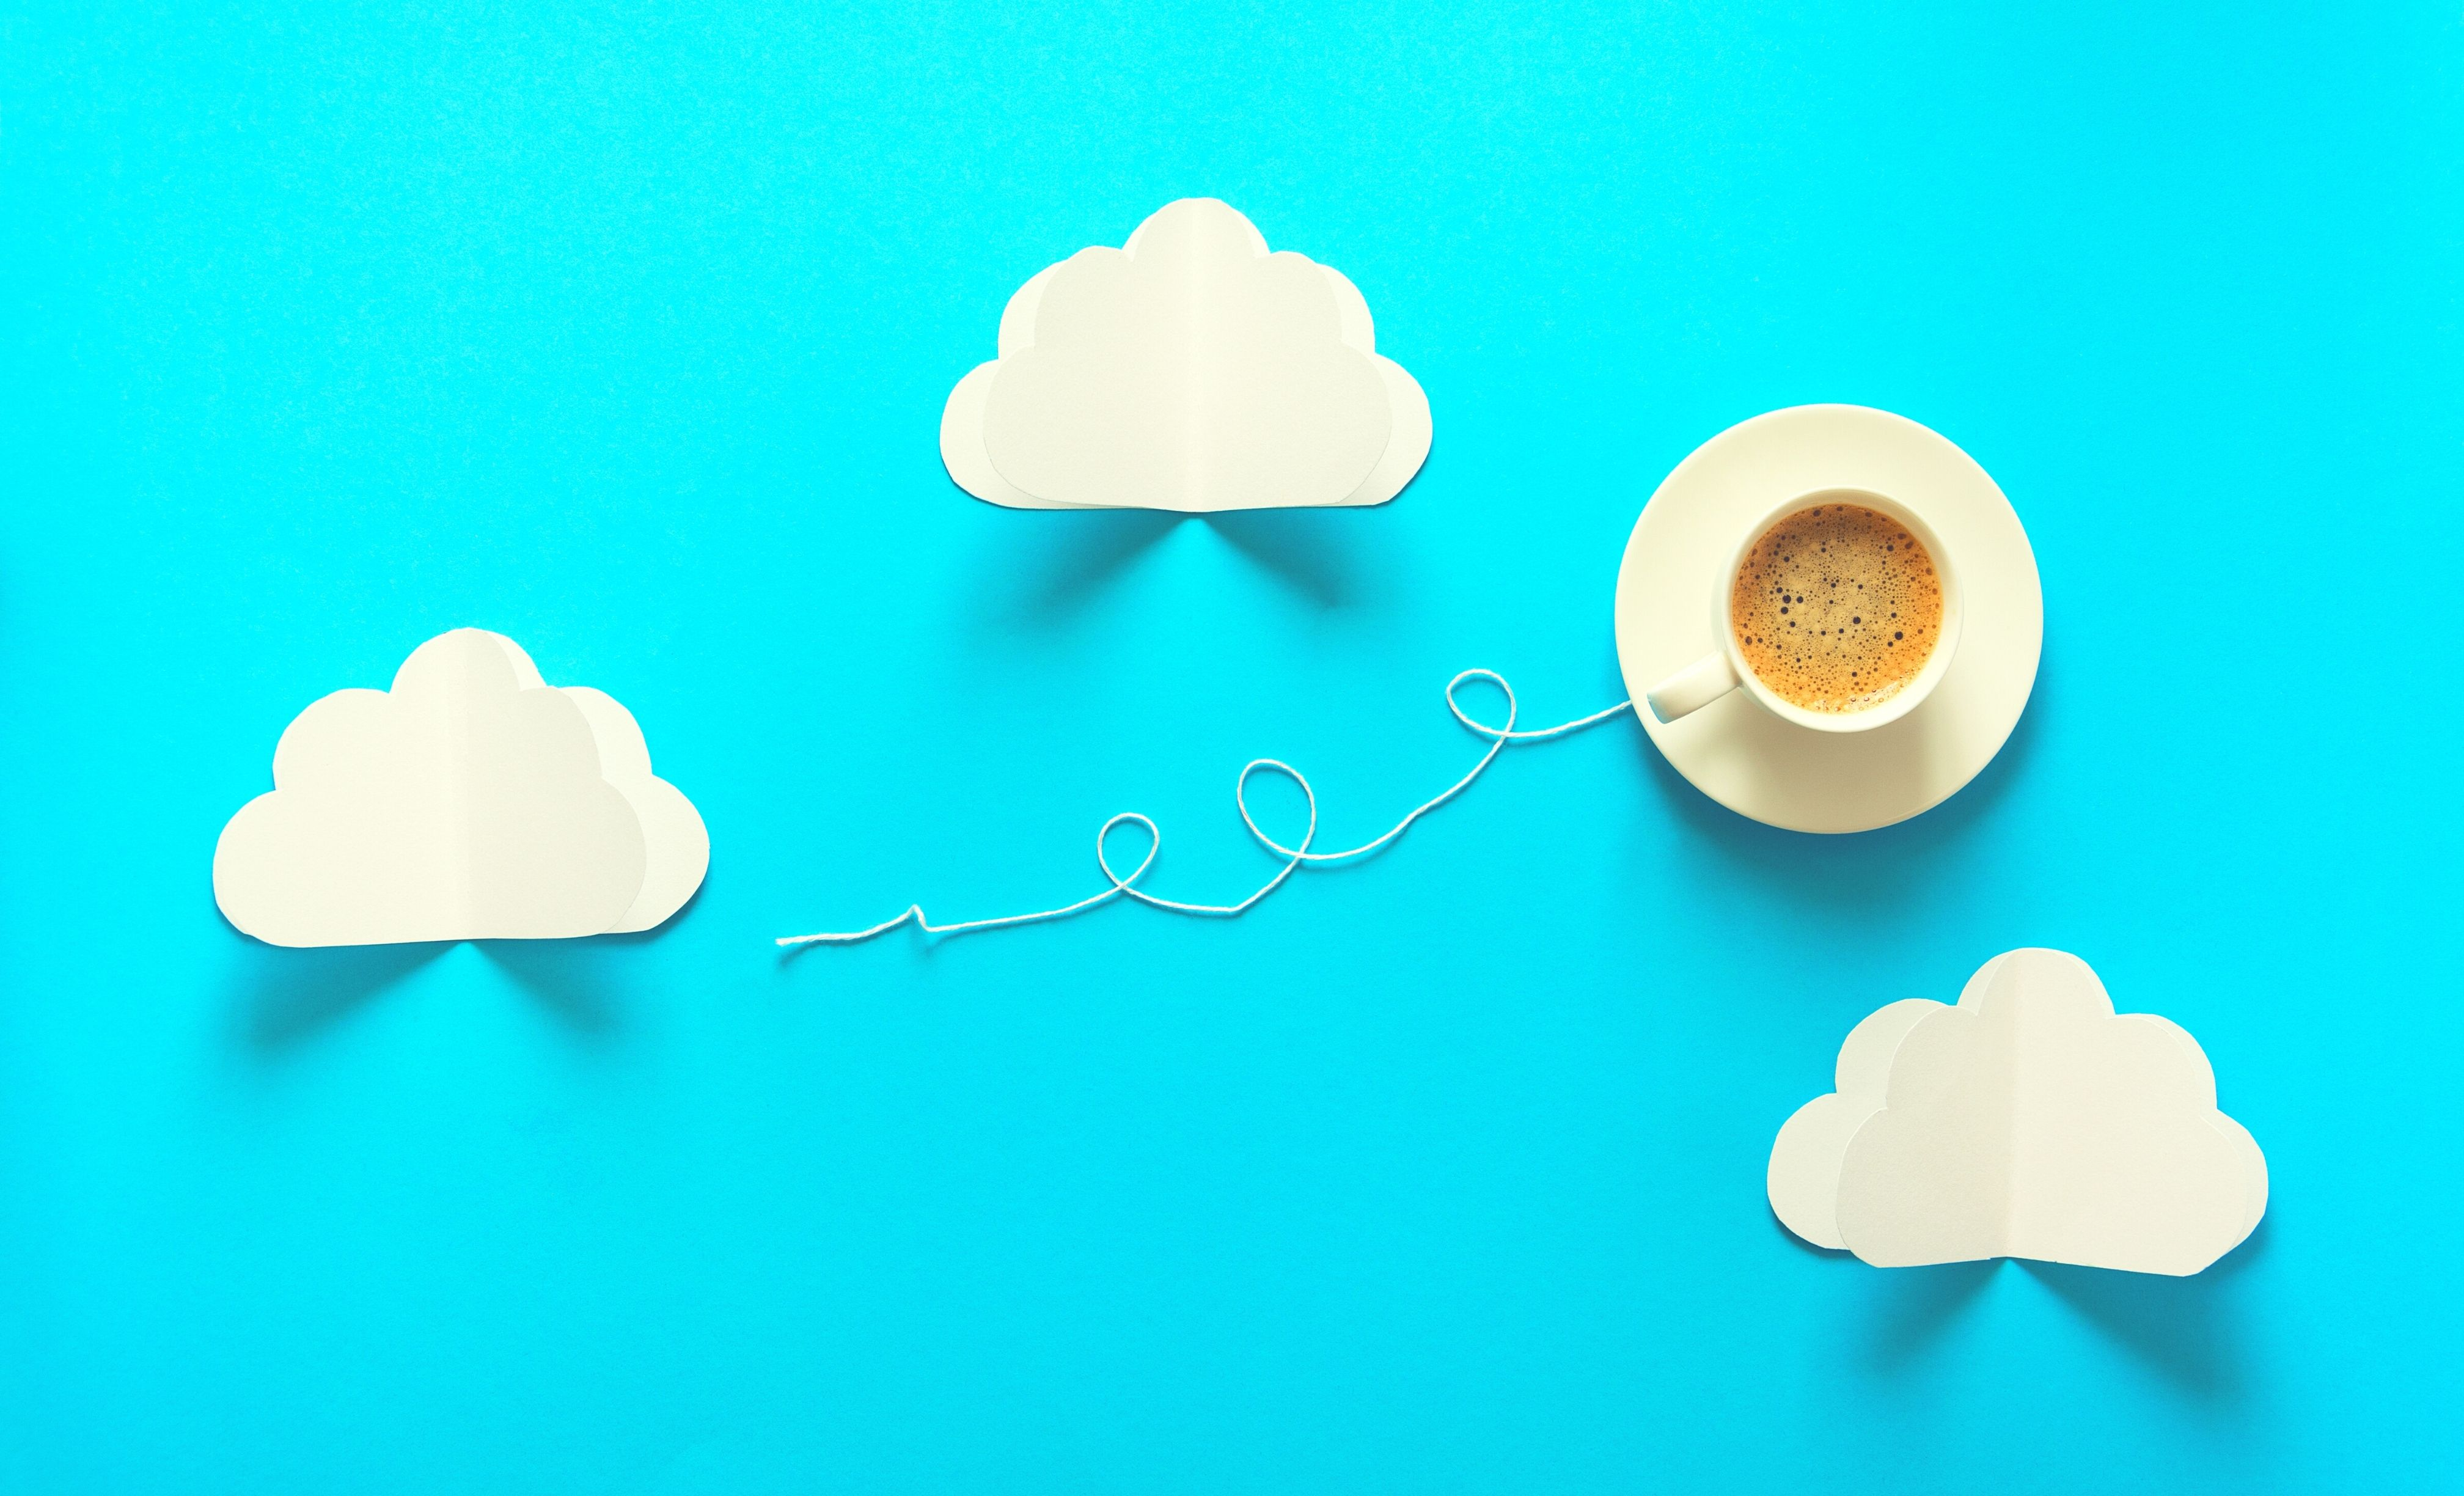 A cup of coffee, surrounded by several paper clouds. There is a string attached to the cup to give the impression that it's a kite.